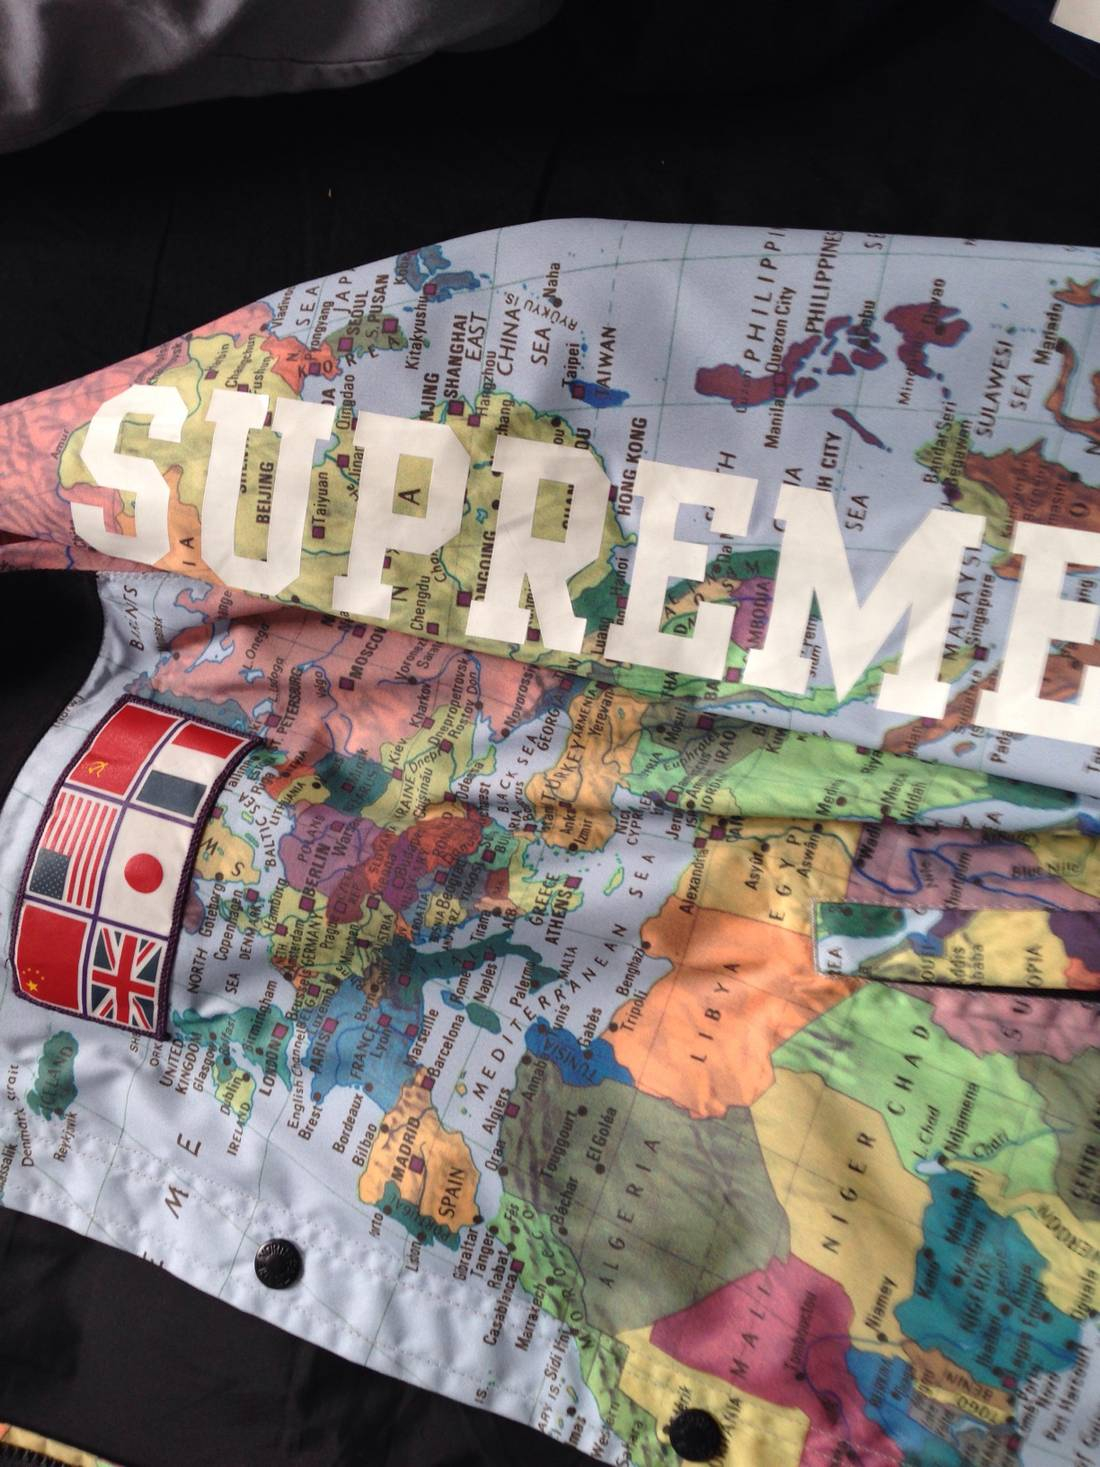 Supreme supreme x northface map jacket size l light jackets for supreme supreme x northface map jacket size us l eu 52 54 3 gumiabroncs Choice Image